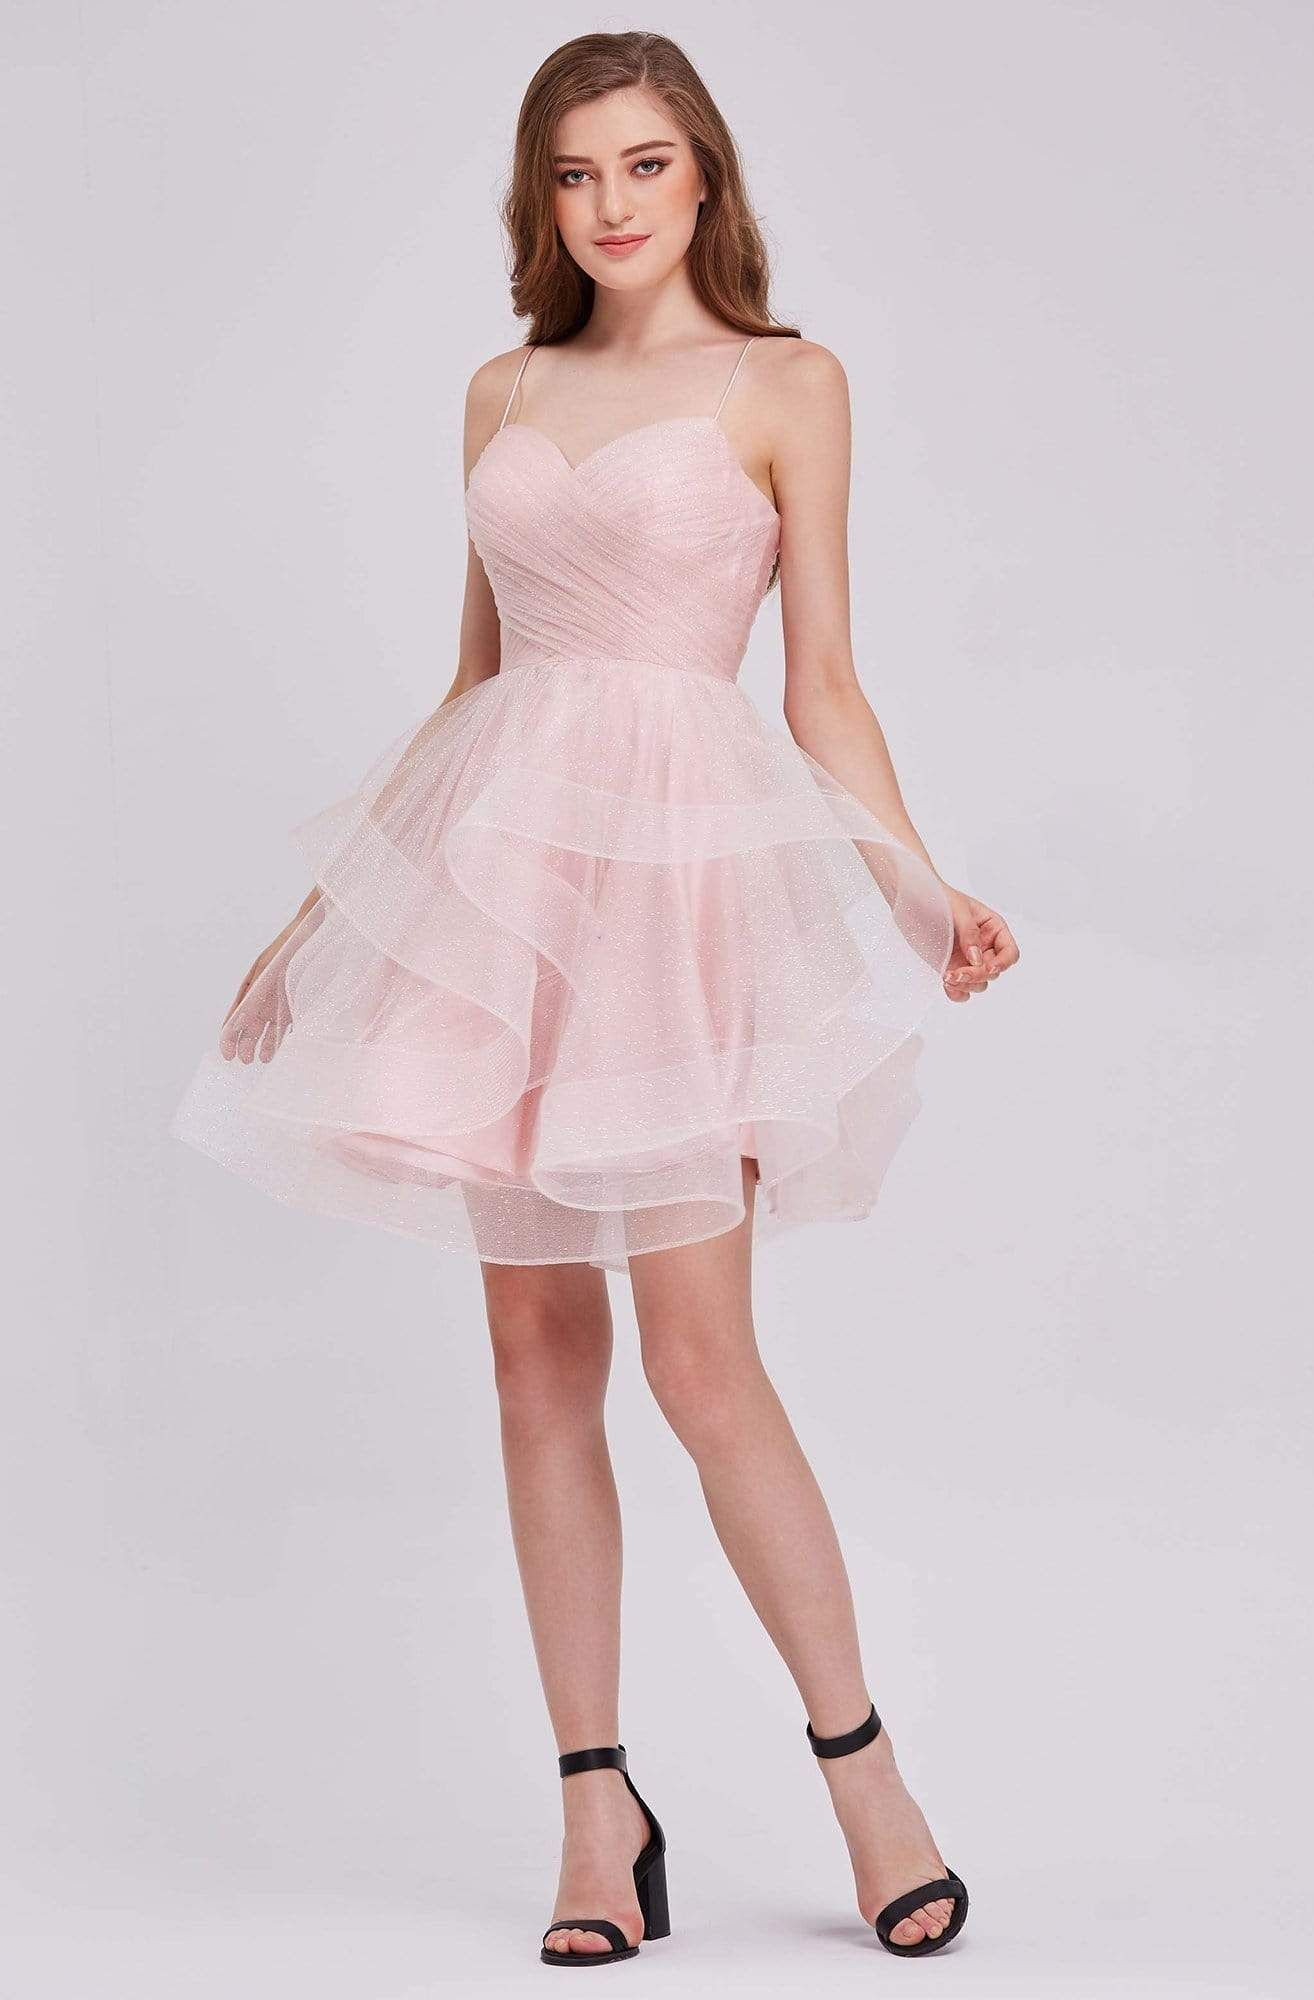 J Adore J16078 Tulle Sweetheart Cocktail Dress In 2021 Tulle Dress Short Pink Cocktail Dress Mitzvah Dresses [ 2000 x 1314 Pixel ]